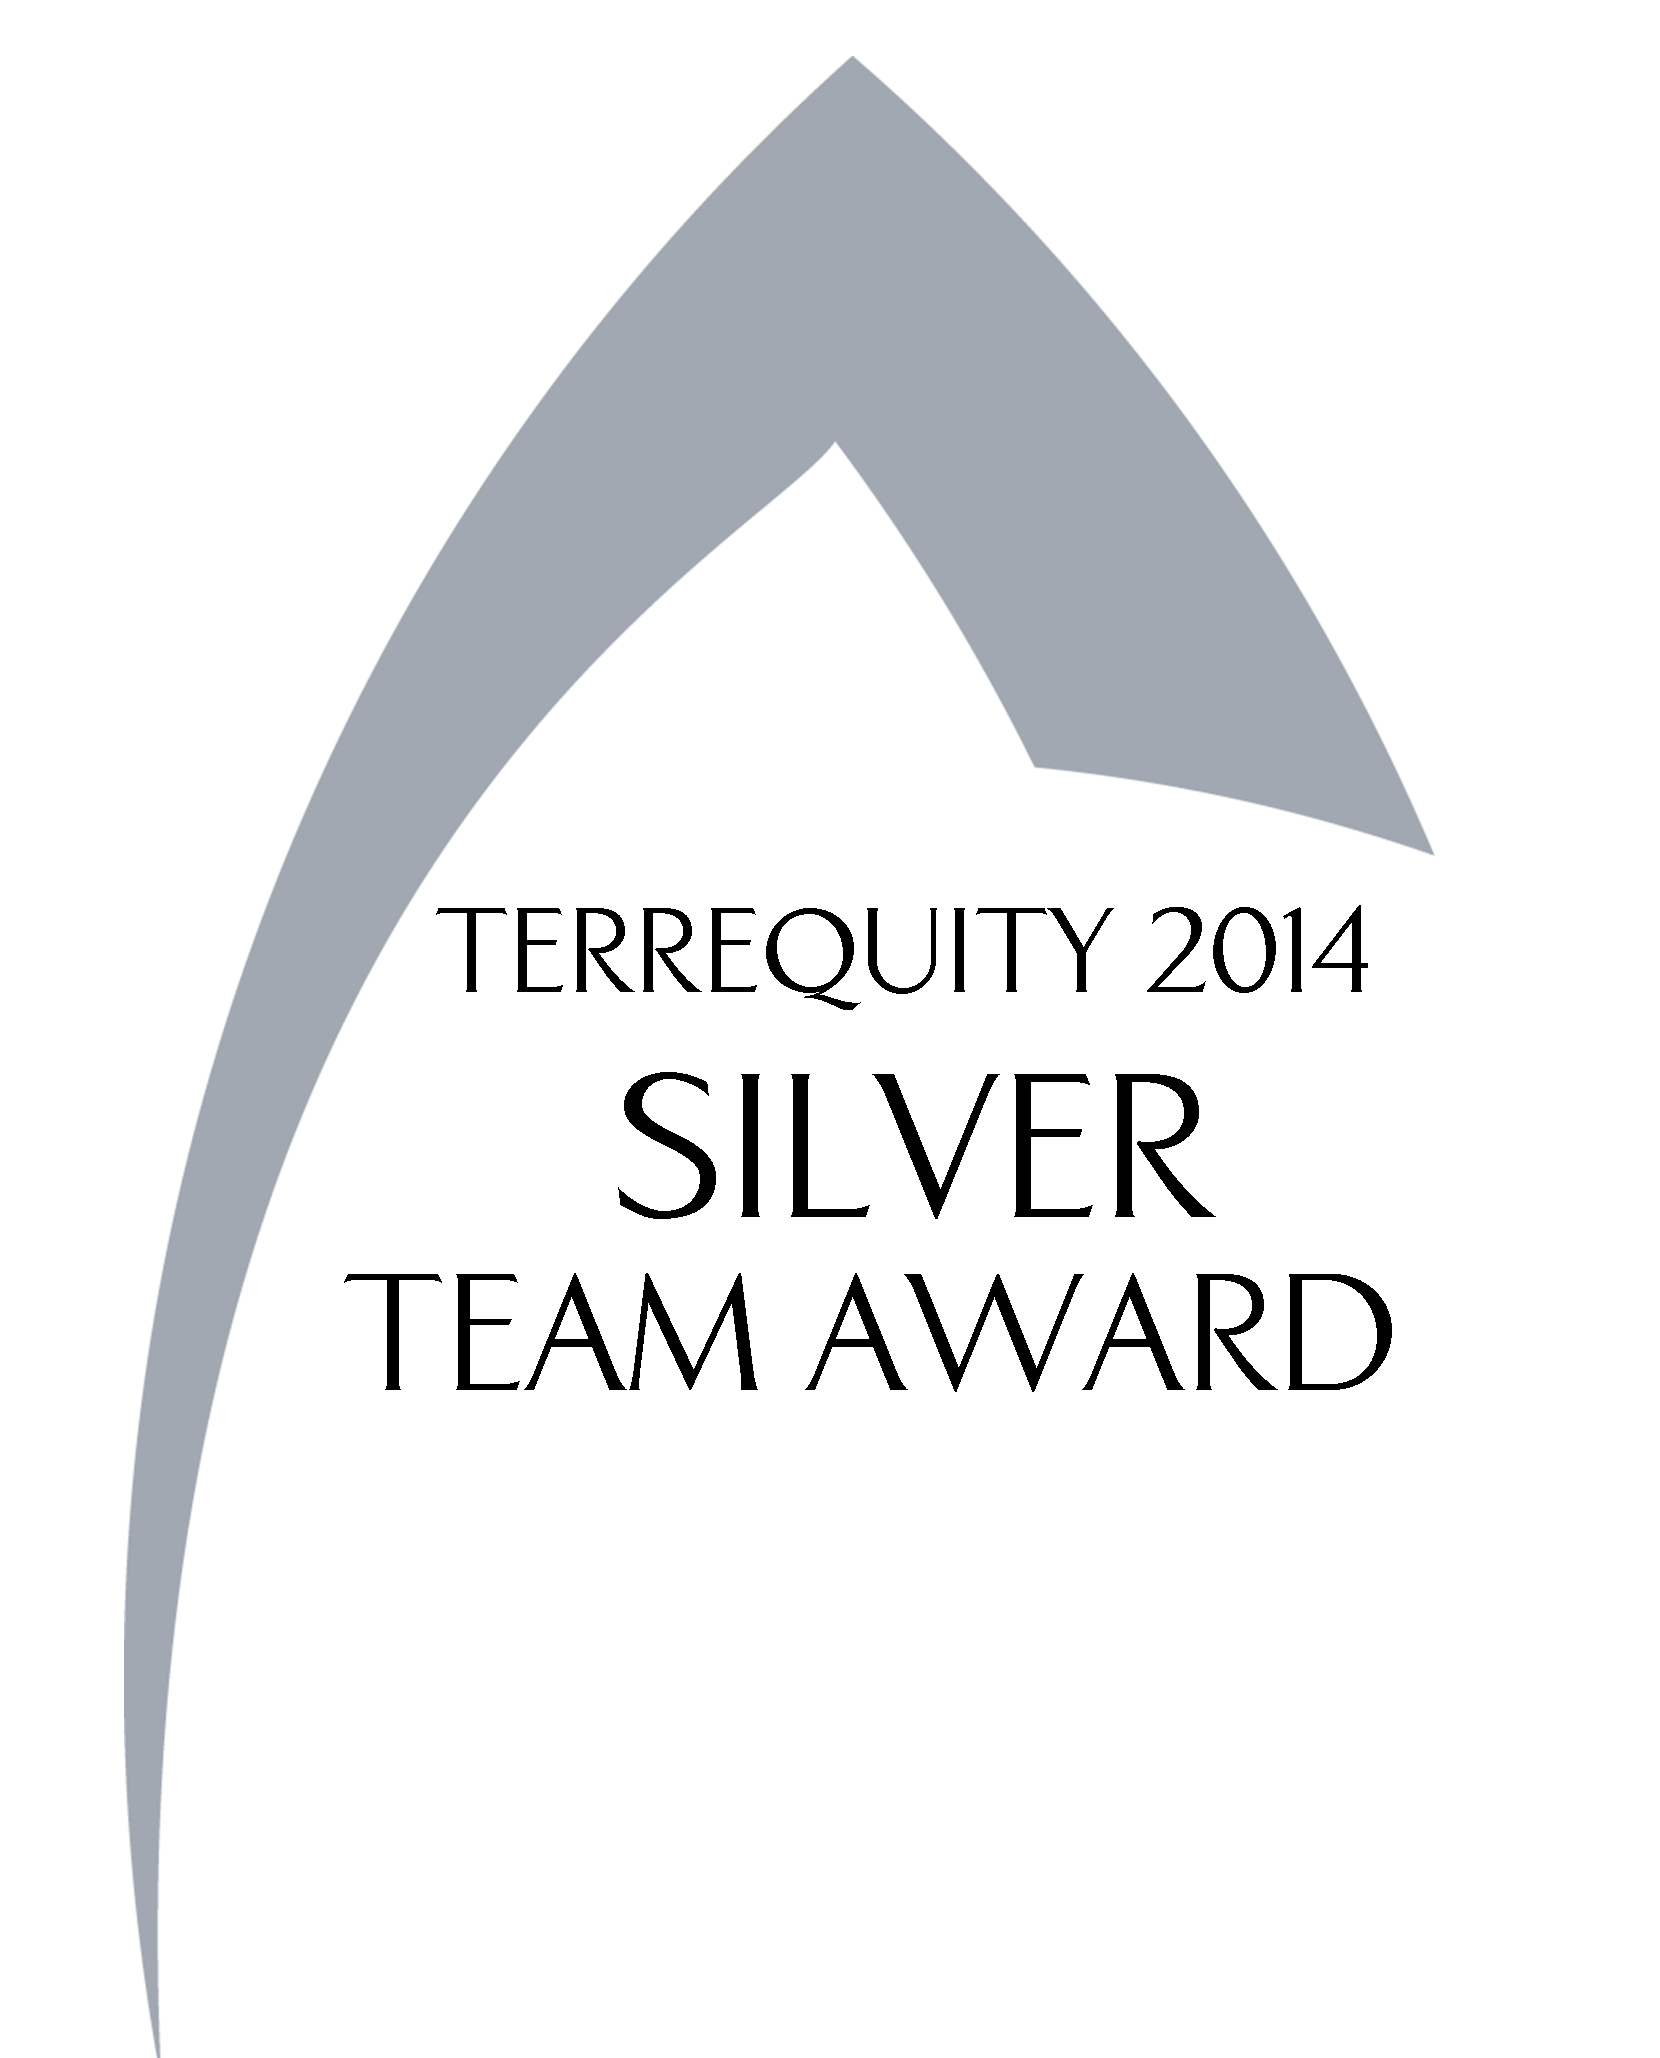 2014 TRI AWARD_Silver TEAM_Cropped.png